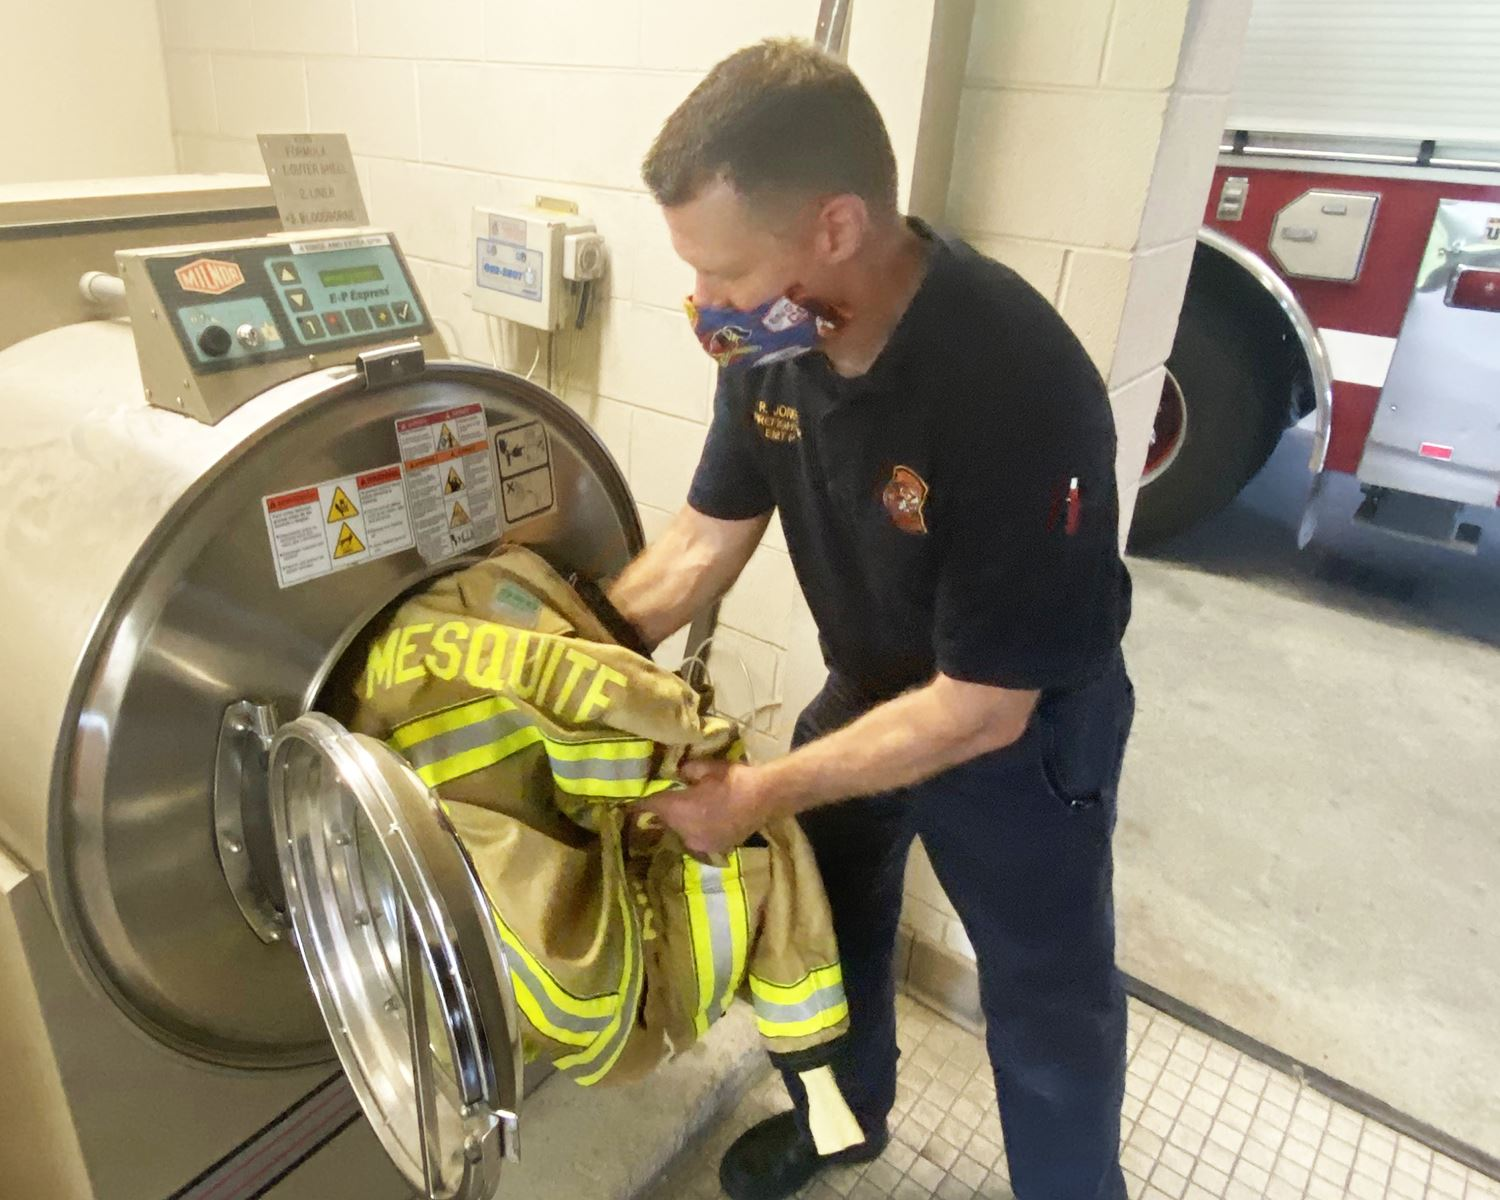 Mesquite Fire - places gear in extractor